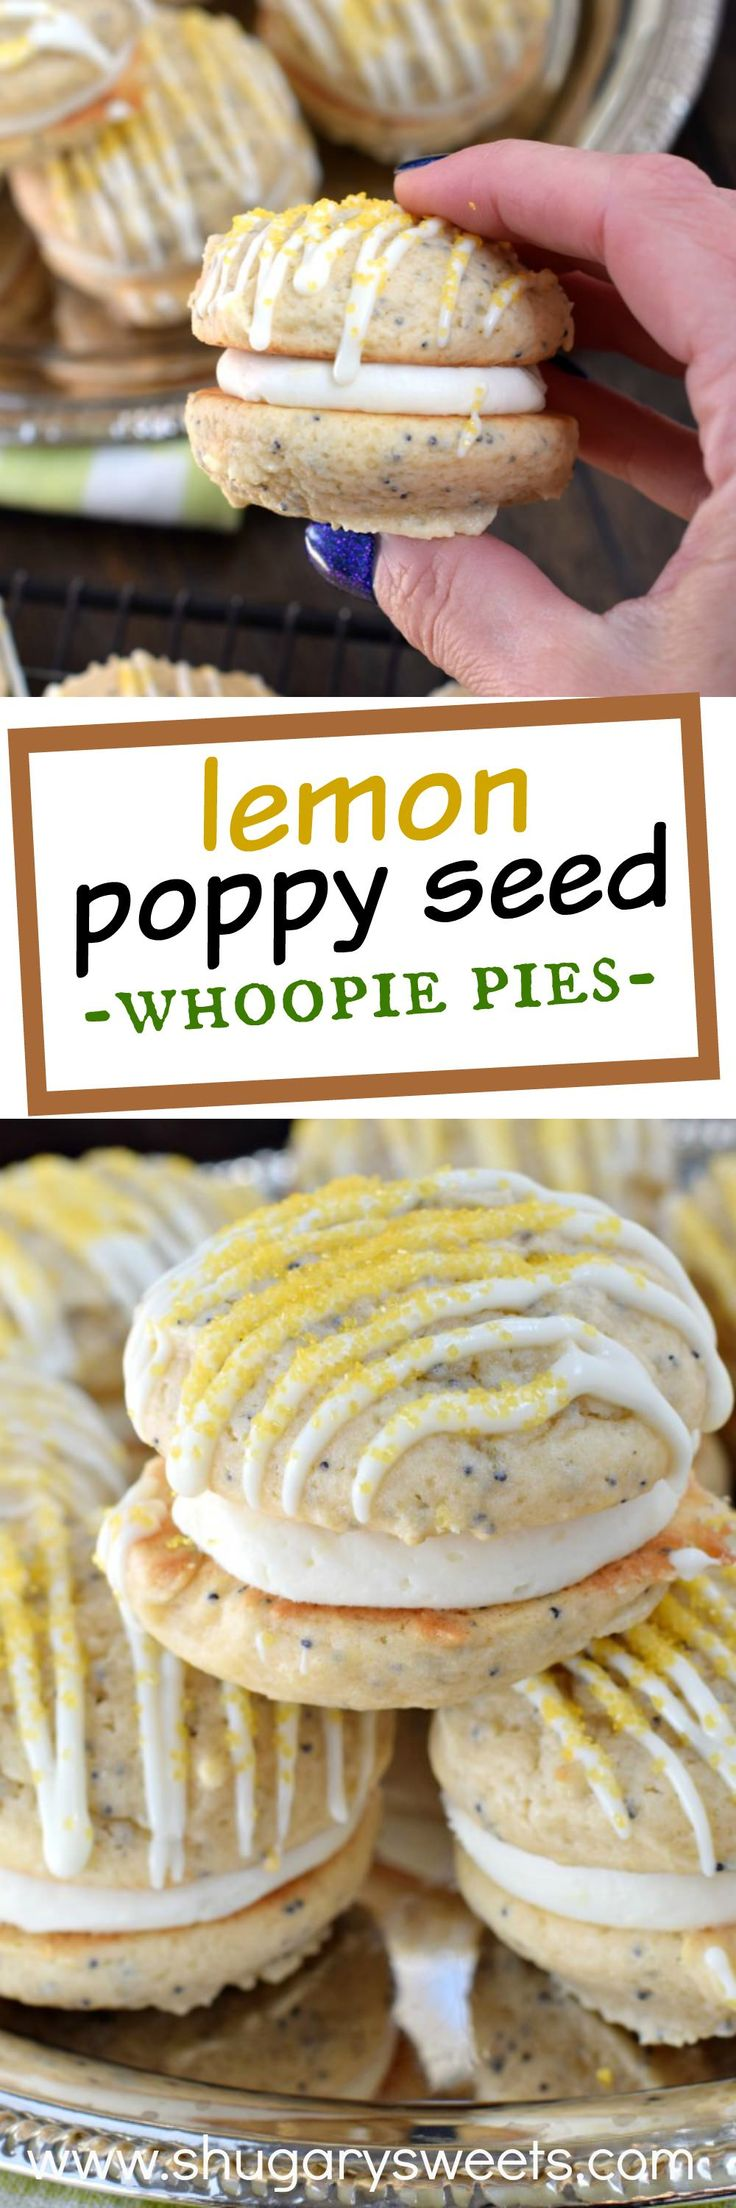 These Lemon Poppy Seed Whoopie Pies are a soft and chewy cookie with a sweet and tangy citrus filling! Your tastebuds are going to sing! #bakealittleextra